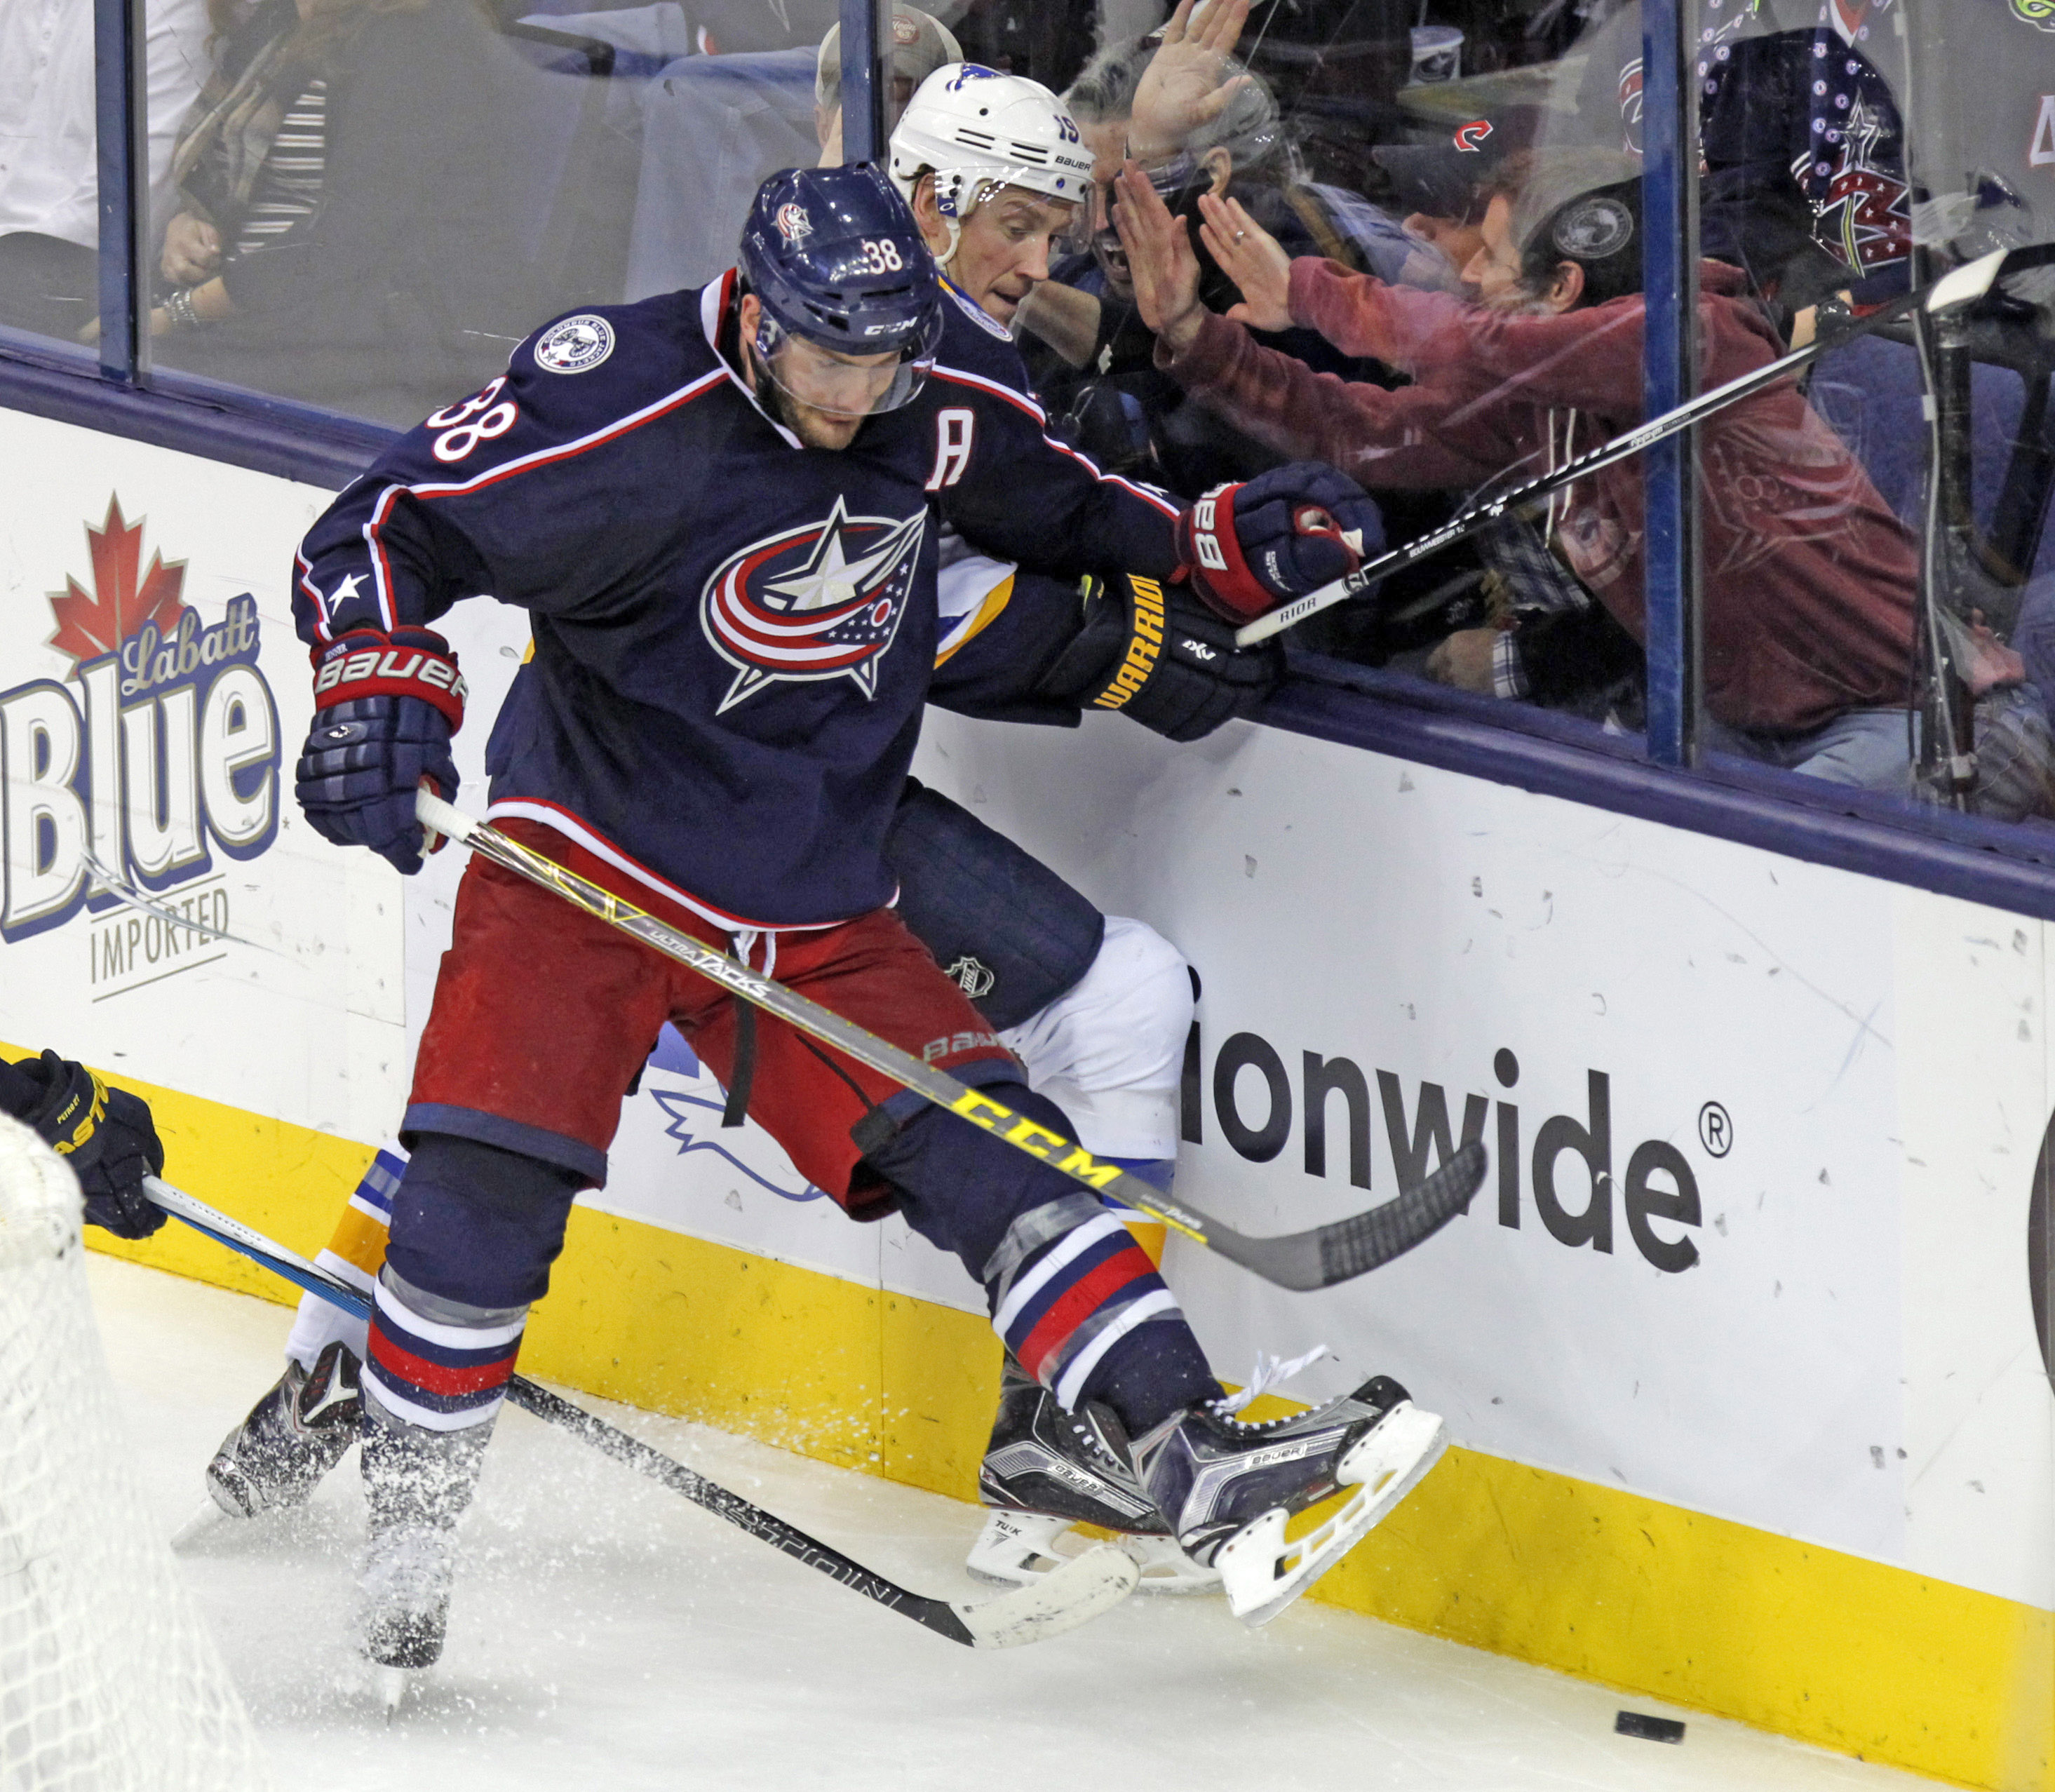 Columbus Blue Jackets' Boone Jenner, left, works for the puck against St. Louis Blues' Jay Bouwmeester during the third period of an NHL hockey game in Columbus, Ohio, Tuesday, Nov. 17, 2015. The Blue Jackets won 3-1. (AP Photo/Paul Vernon)